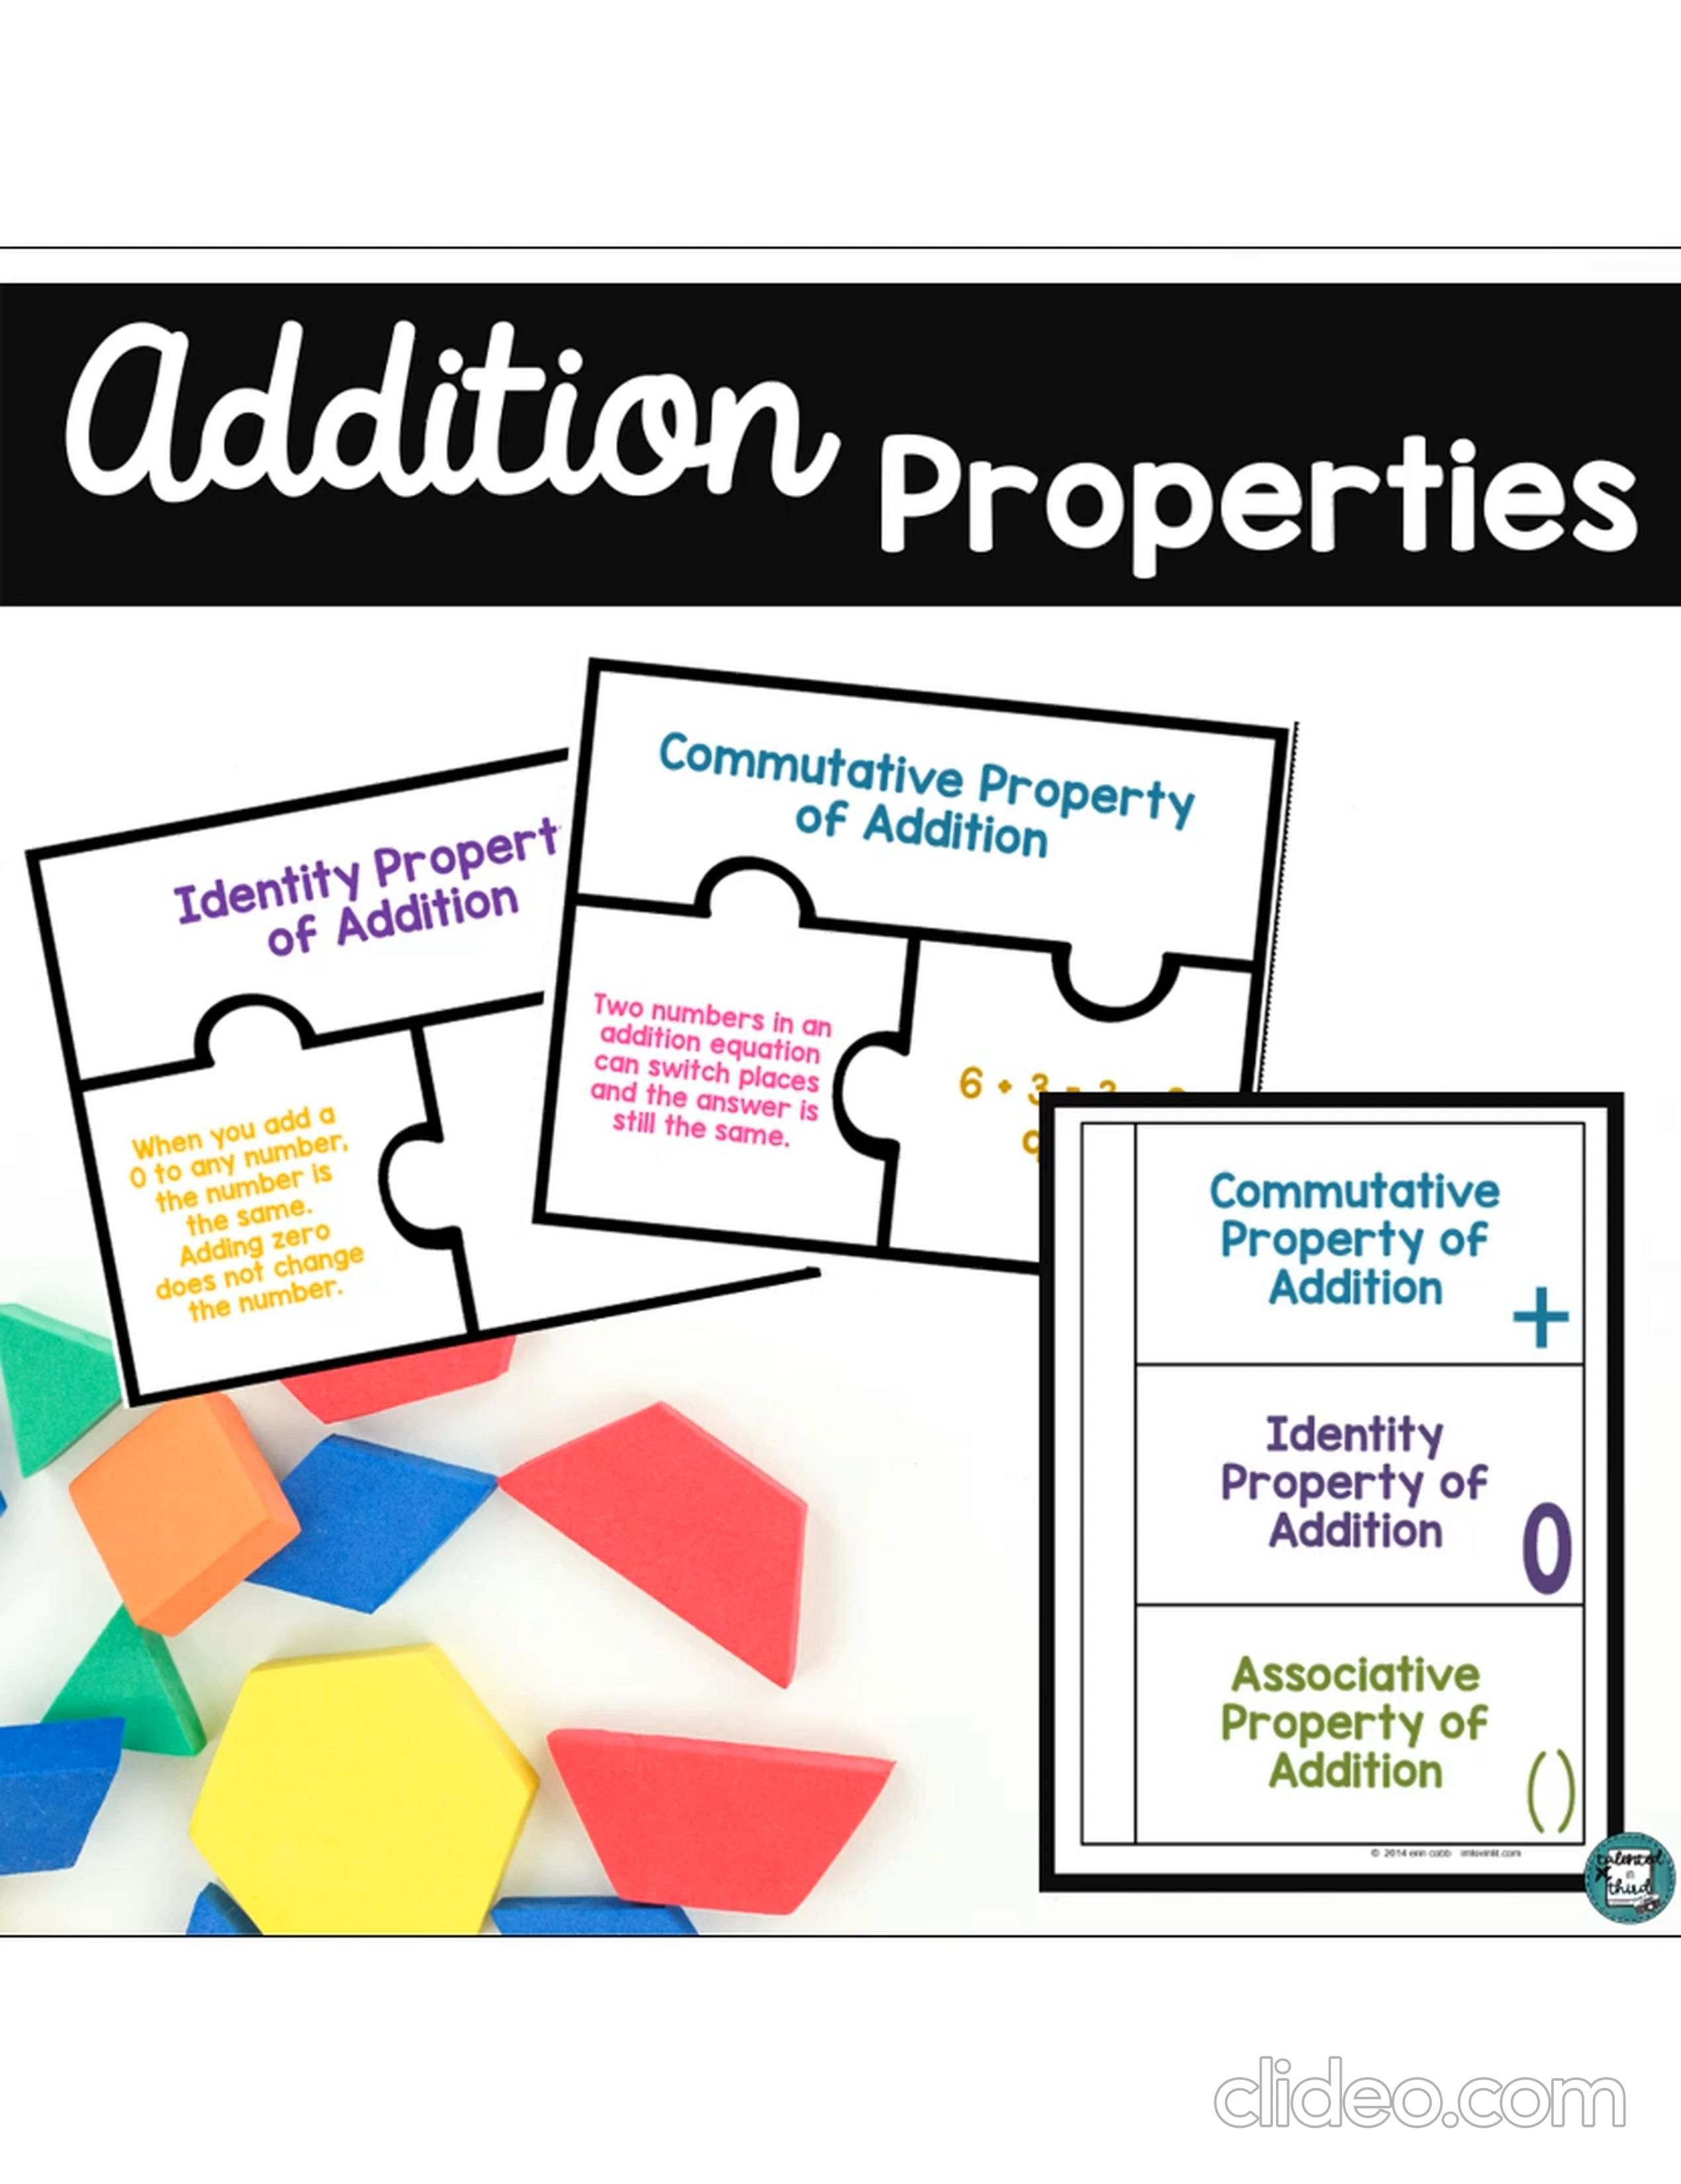 Addition Properties Video In 2021 Properties Of Addition Math Resources Addition Games What is zero property of addition